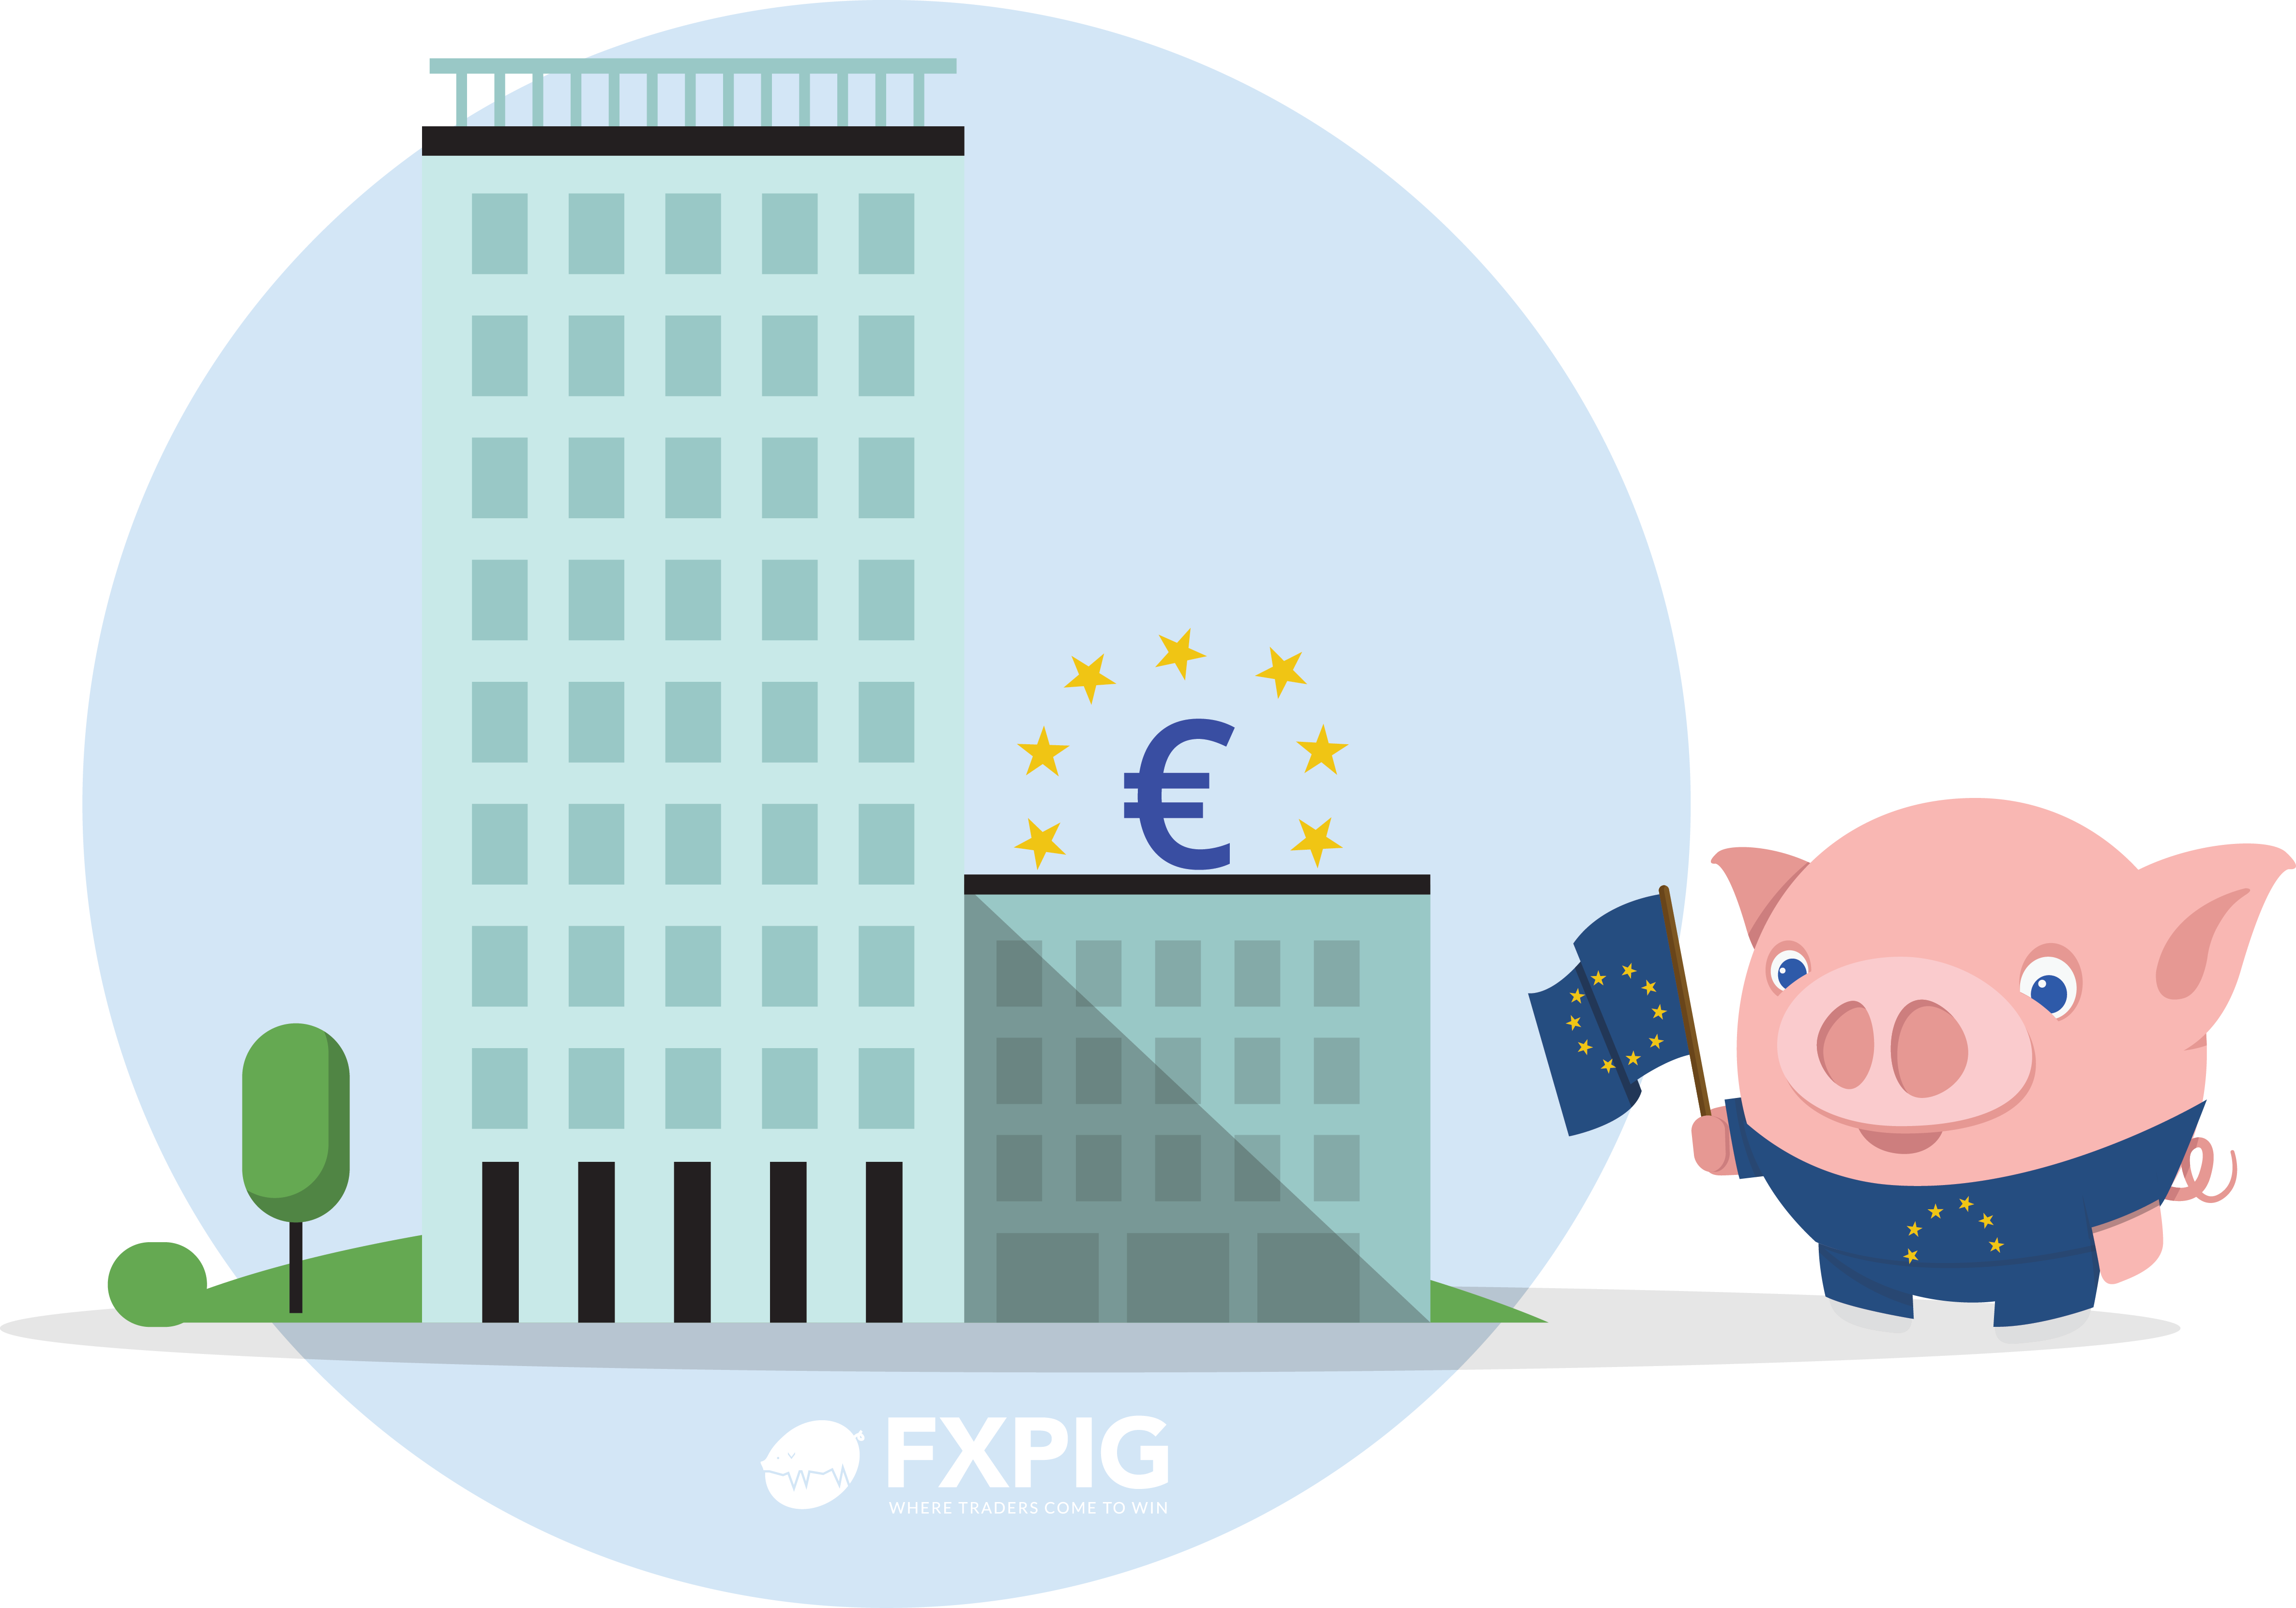 ecb_on-hold_Forex_FXPIG